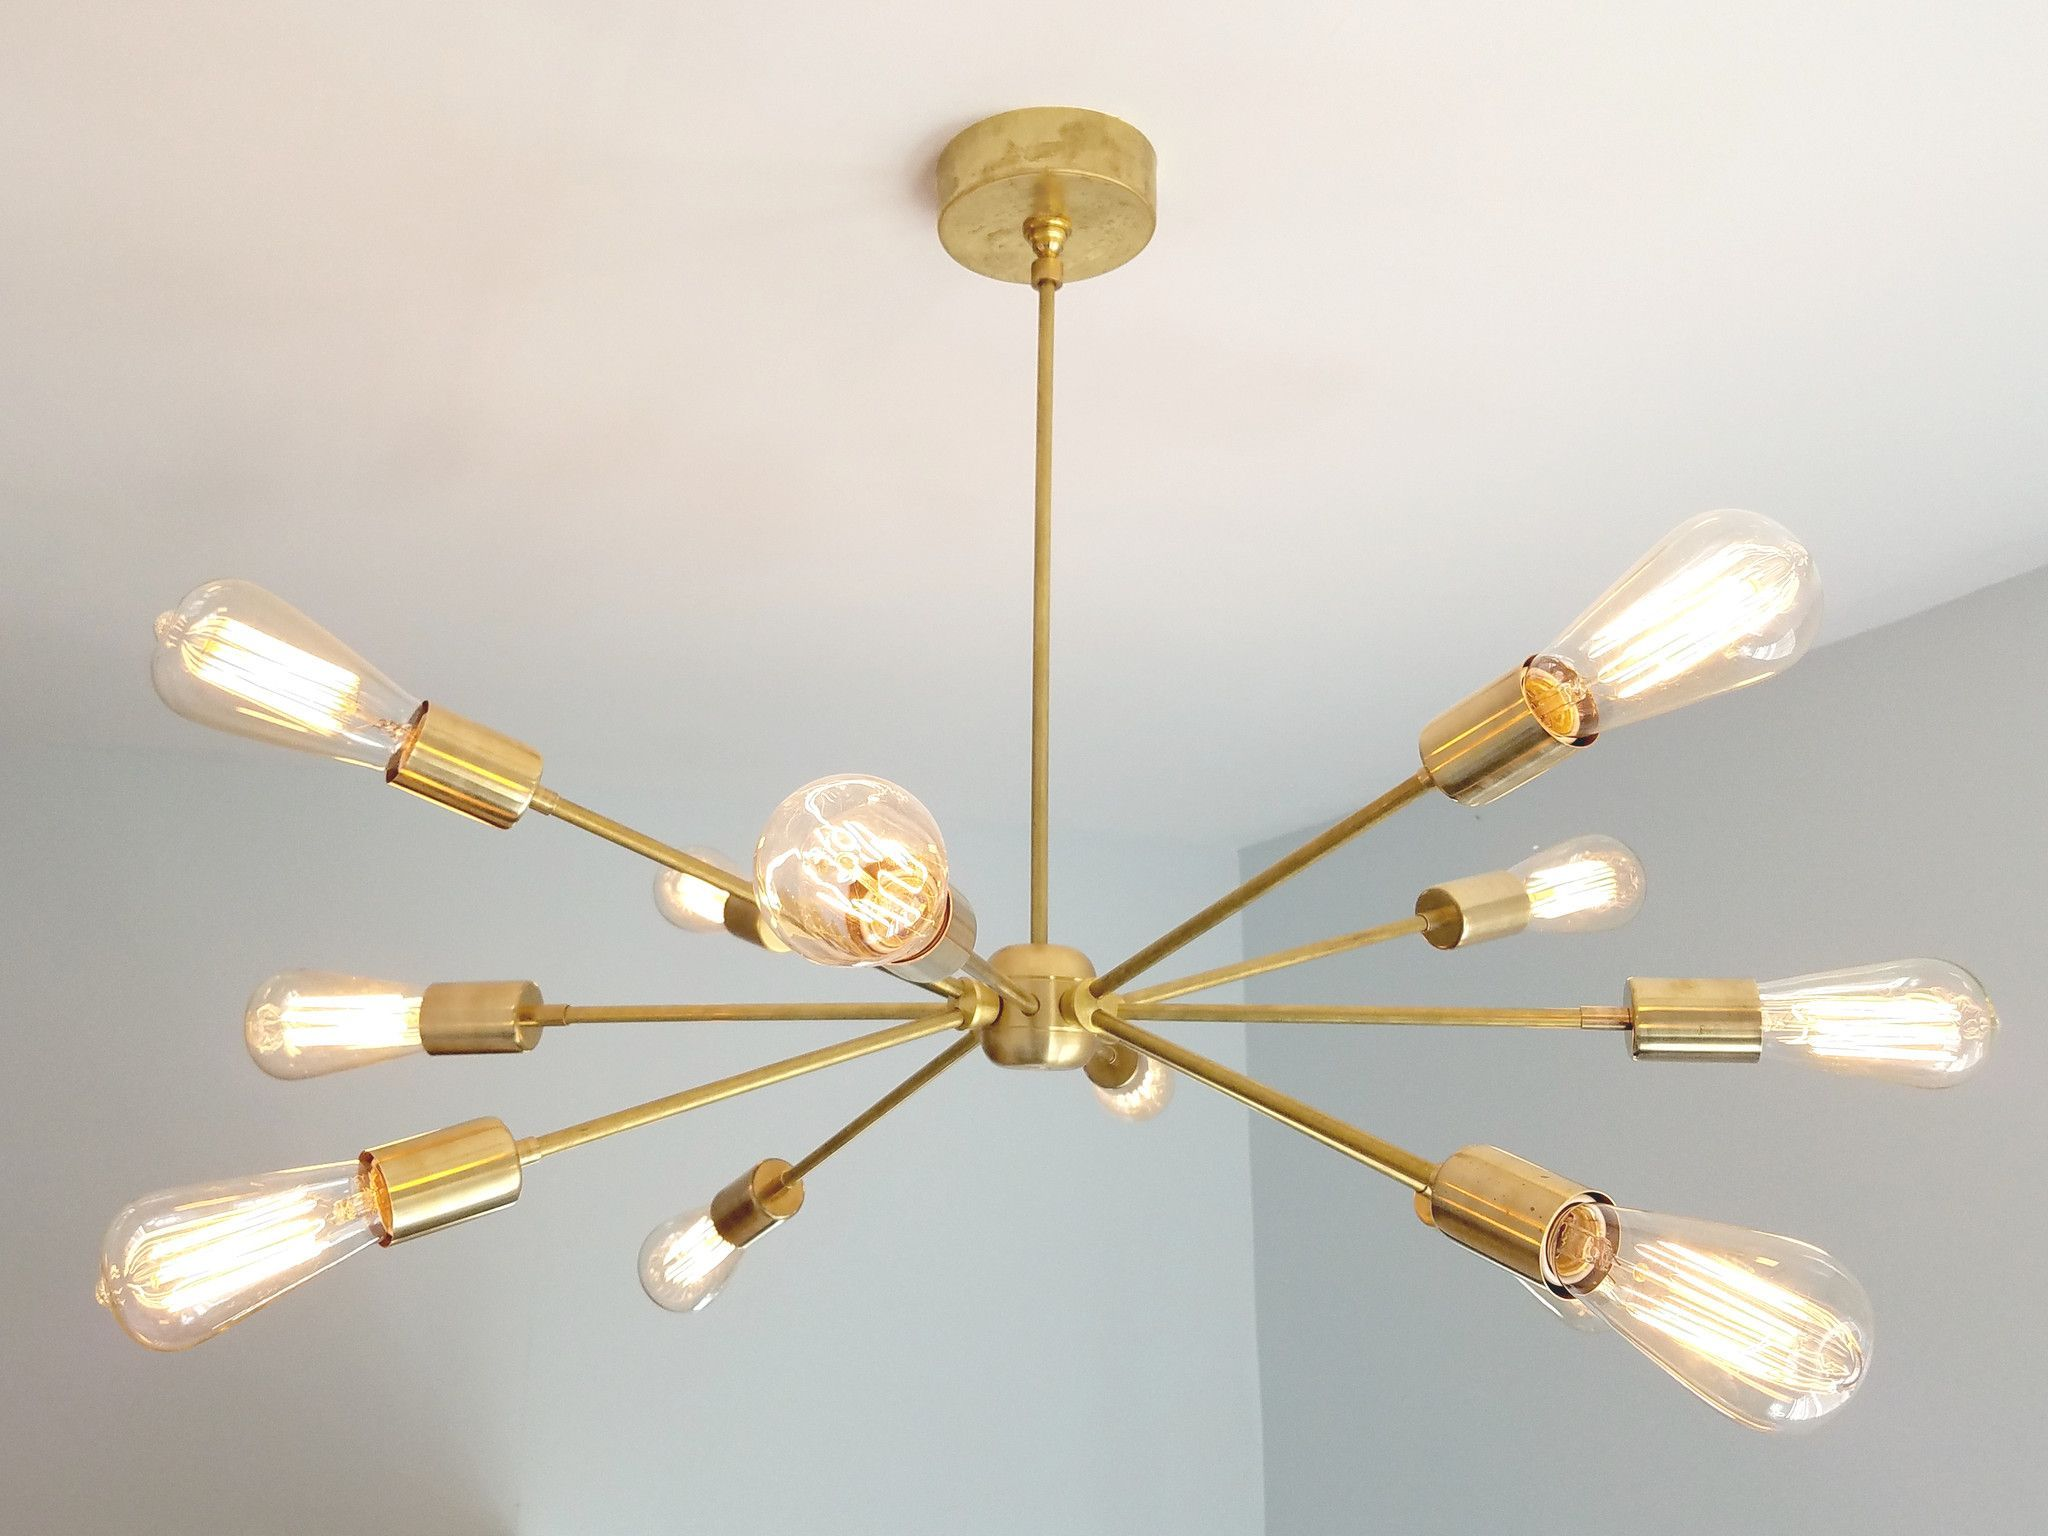 Elsie chandelier chandeliers bedrooms and lights the elsie chandelier is another take on the popular sputnik chandelier with 12 e26 sockets this fixture can be used as functional lighting for an office mozeypictures Images